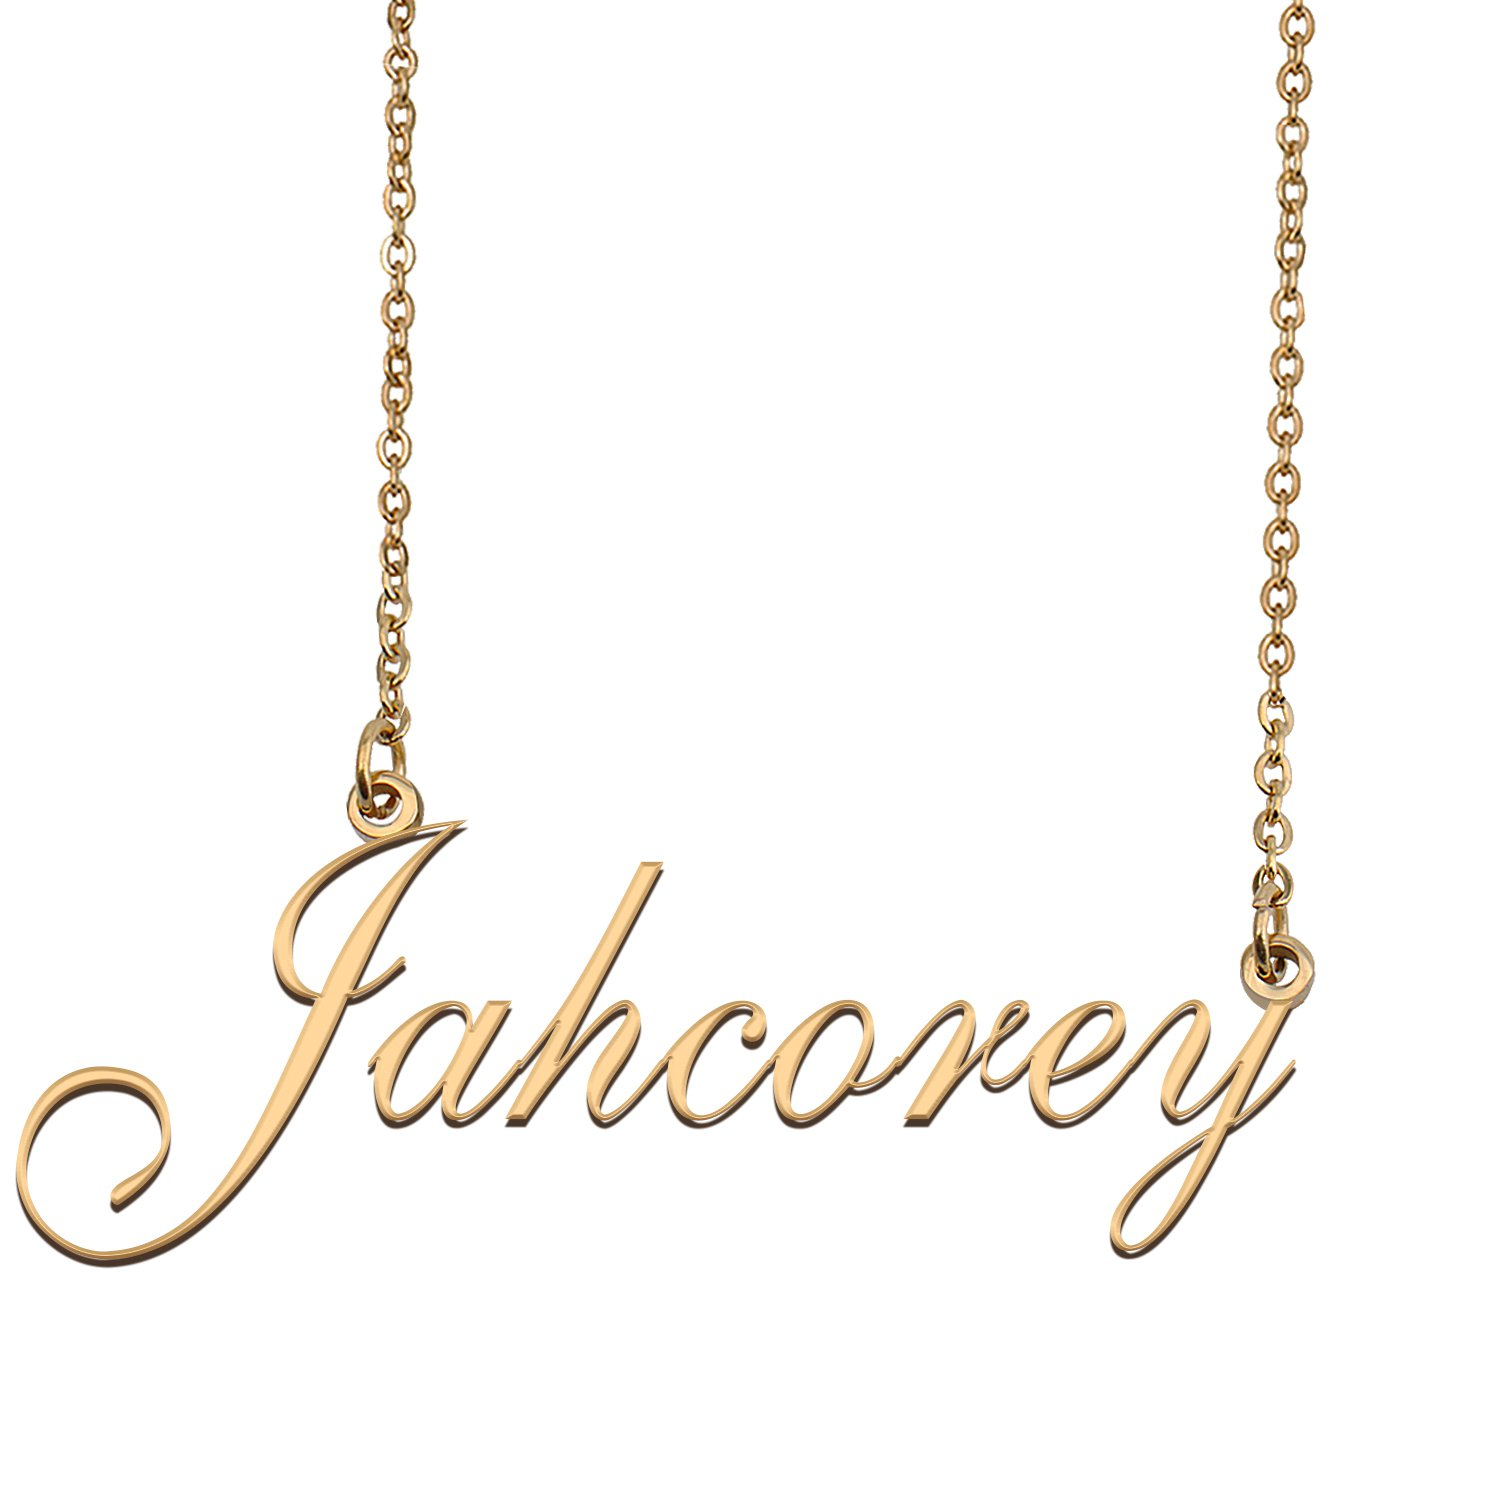 Personalized My Name Necklace Dainty personal Initial Necklace Jahcorey